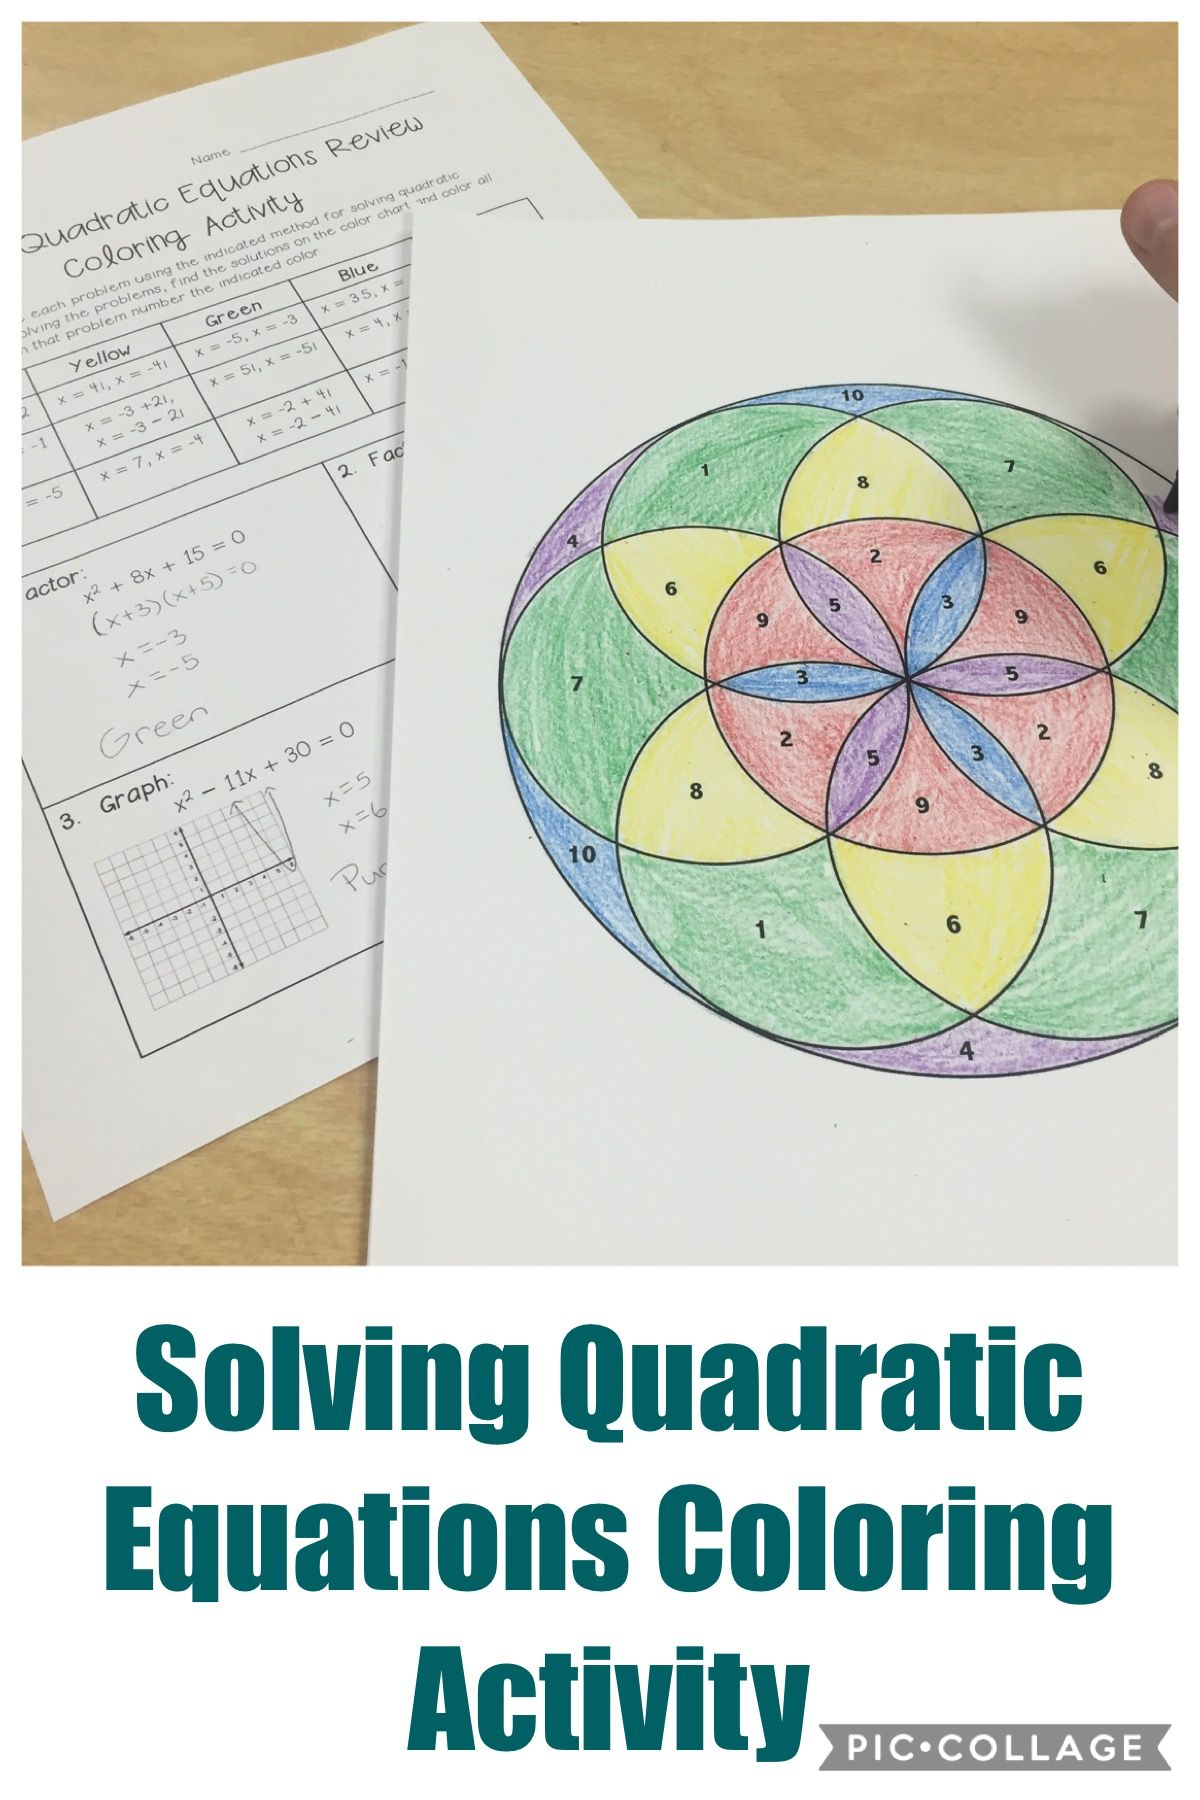 Solving Quadratic Equations Review Coloring Activity Secondary Math Resources Grades 6